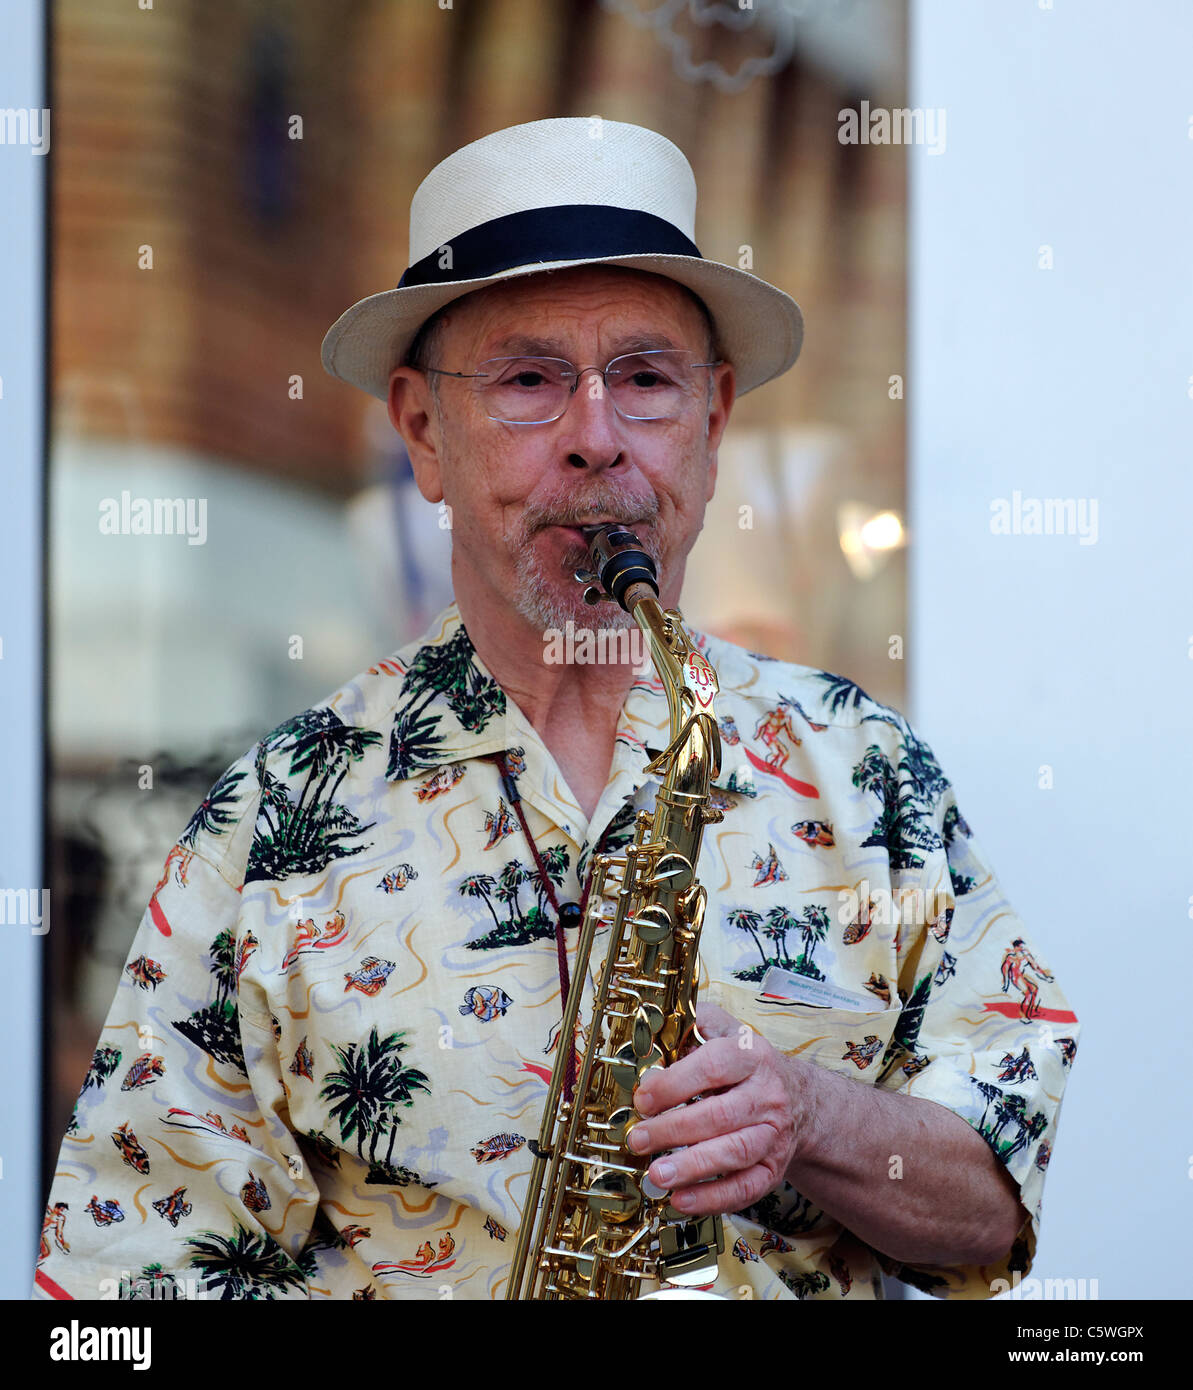 Saxophone player in a jazz band on the streets of Paris, France - Stock Image